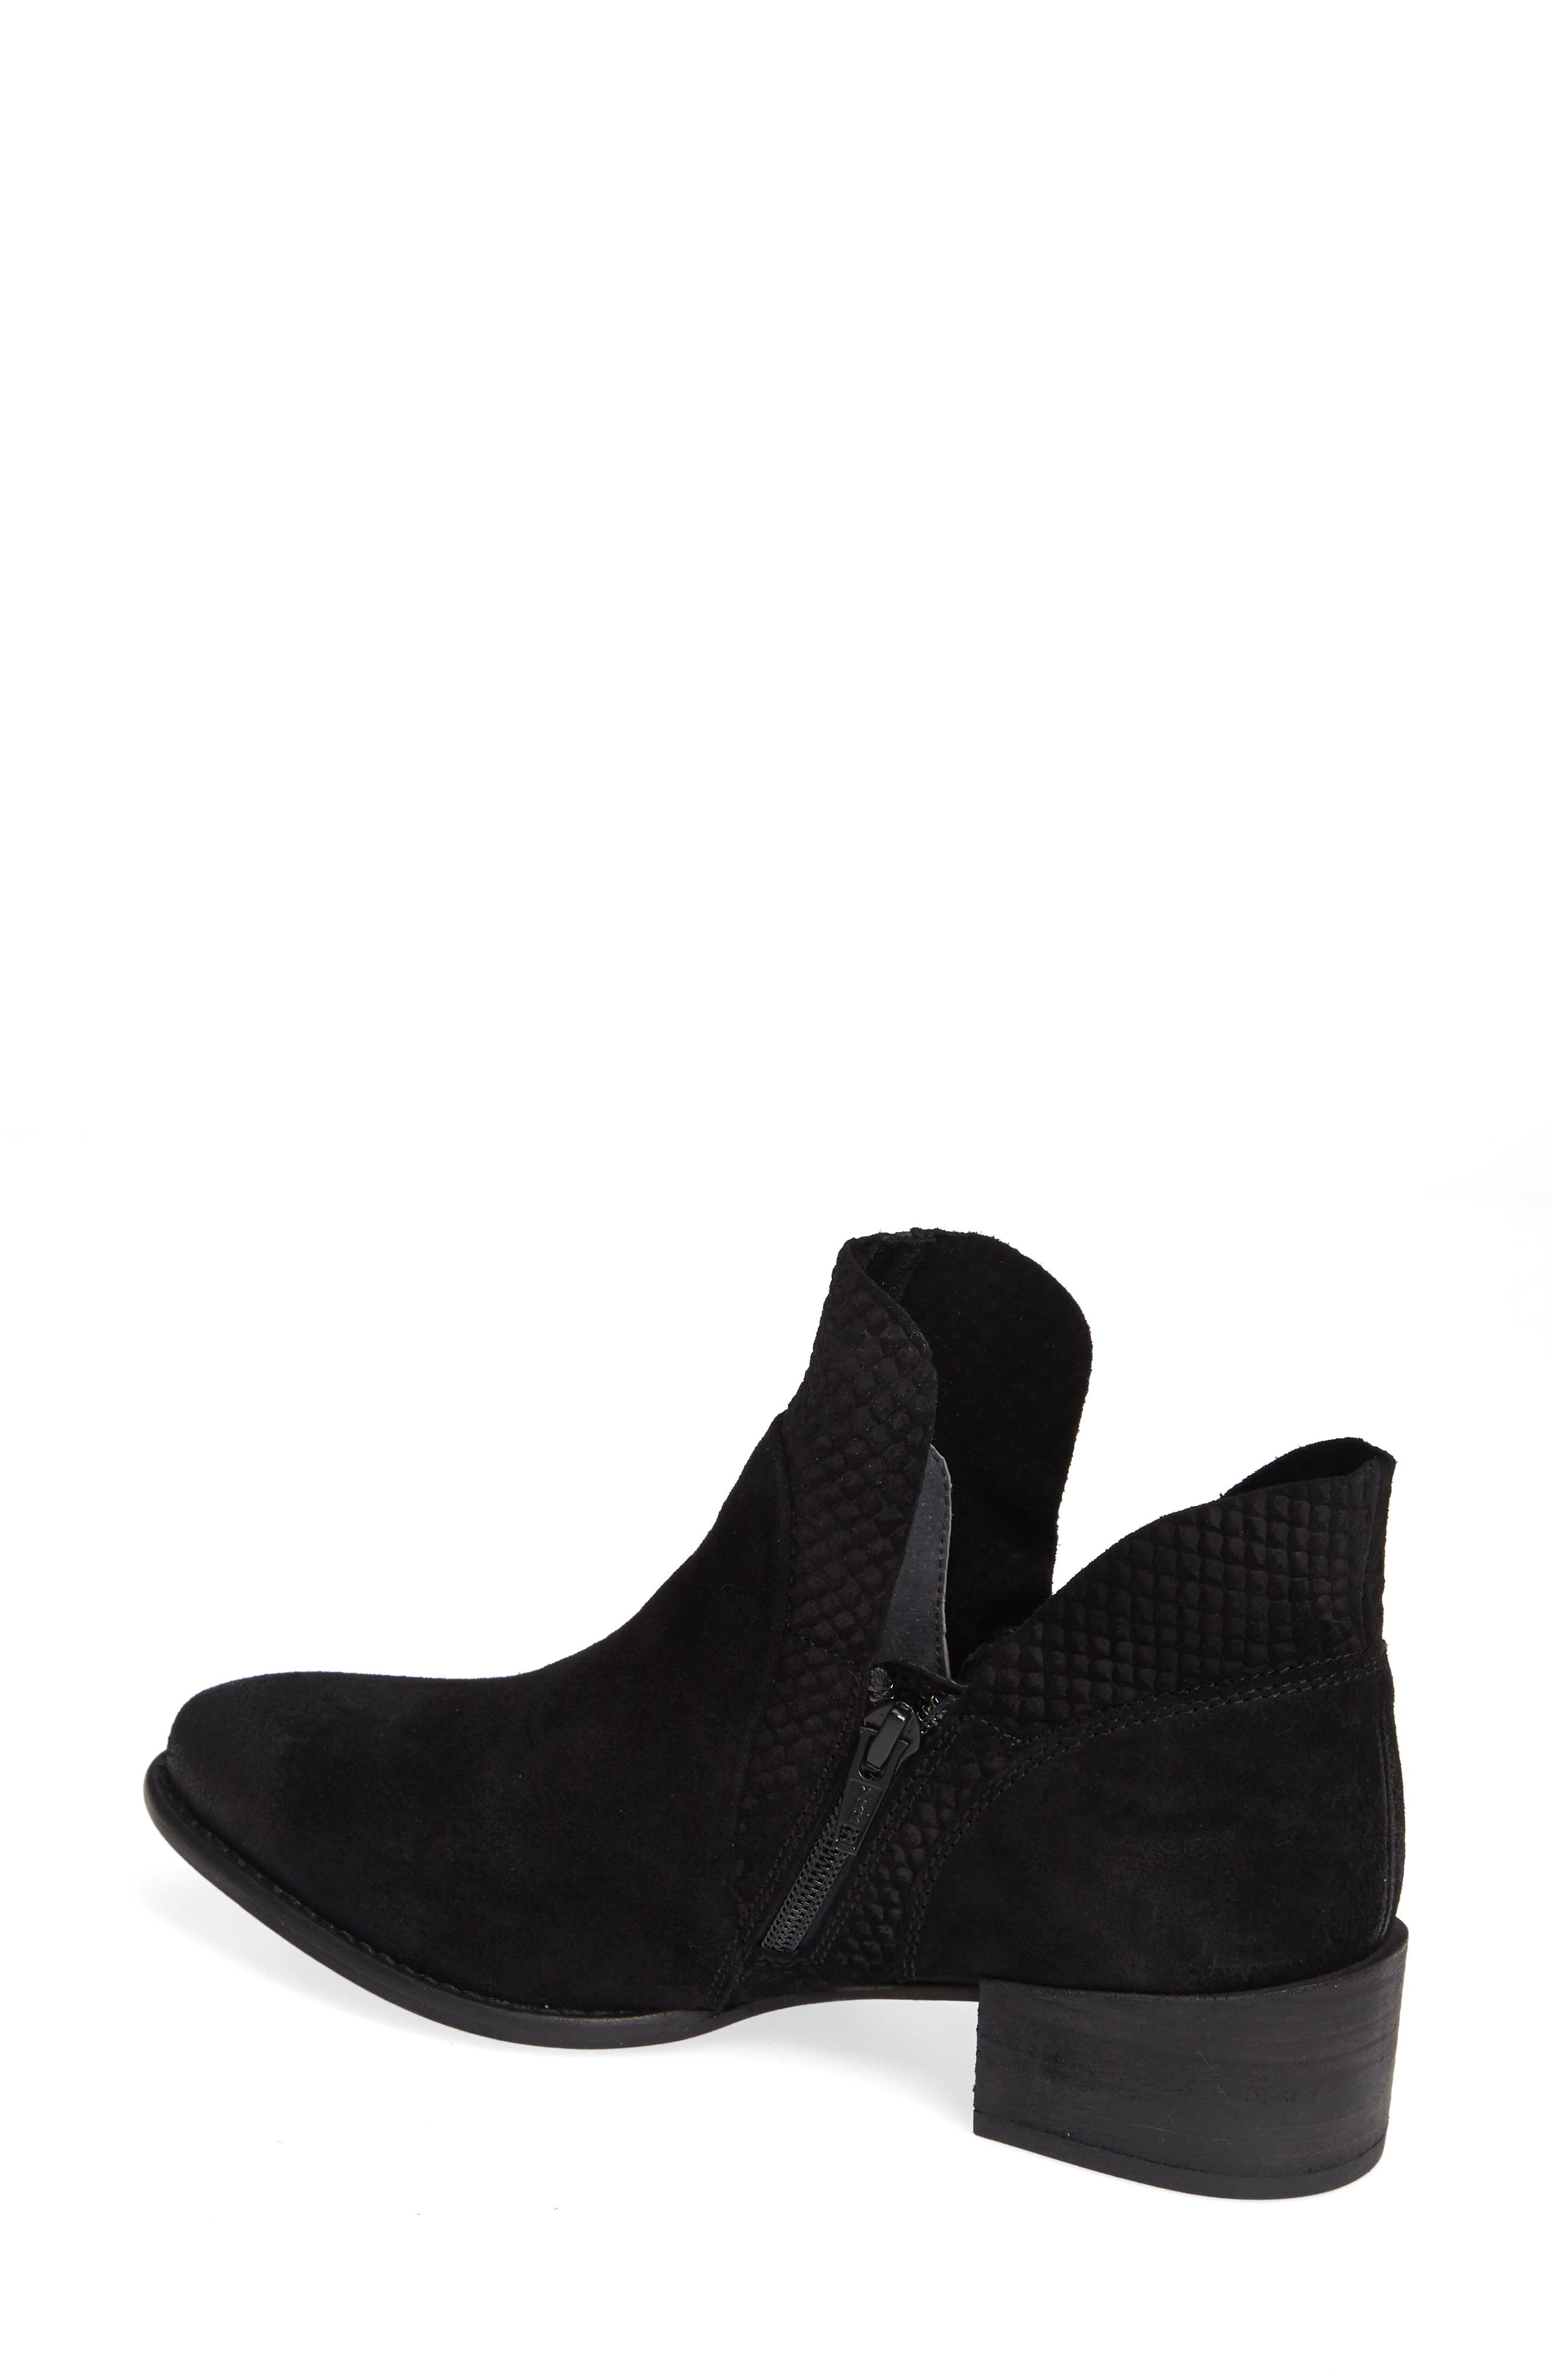 Score Bootie,                             Alternate thumbnail 2, color,                             BLACK SUEDE